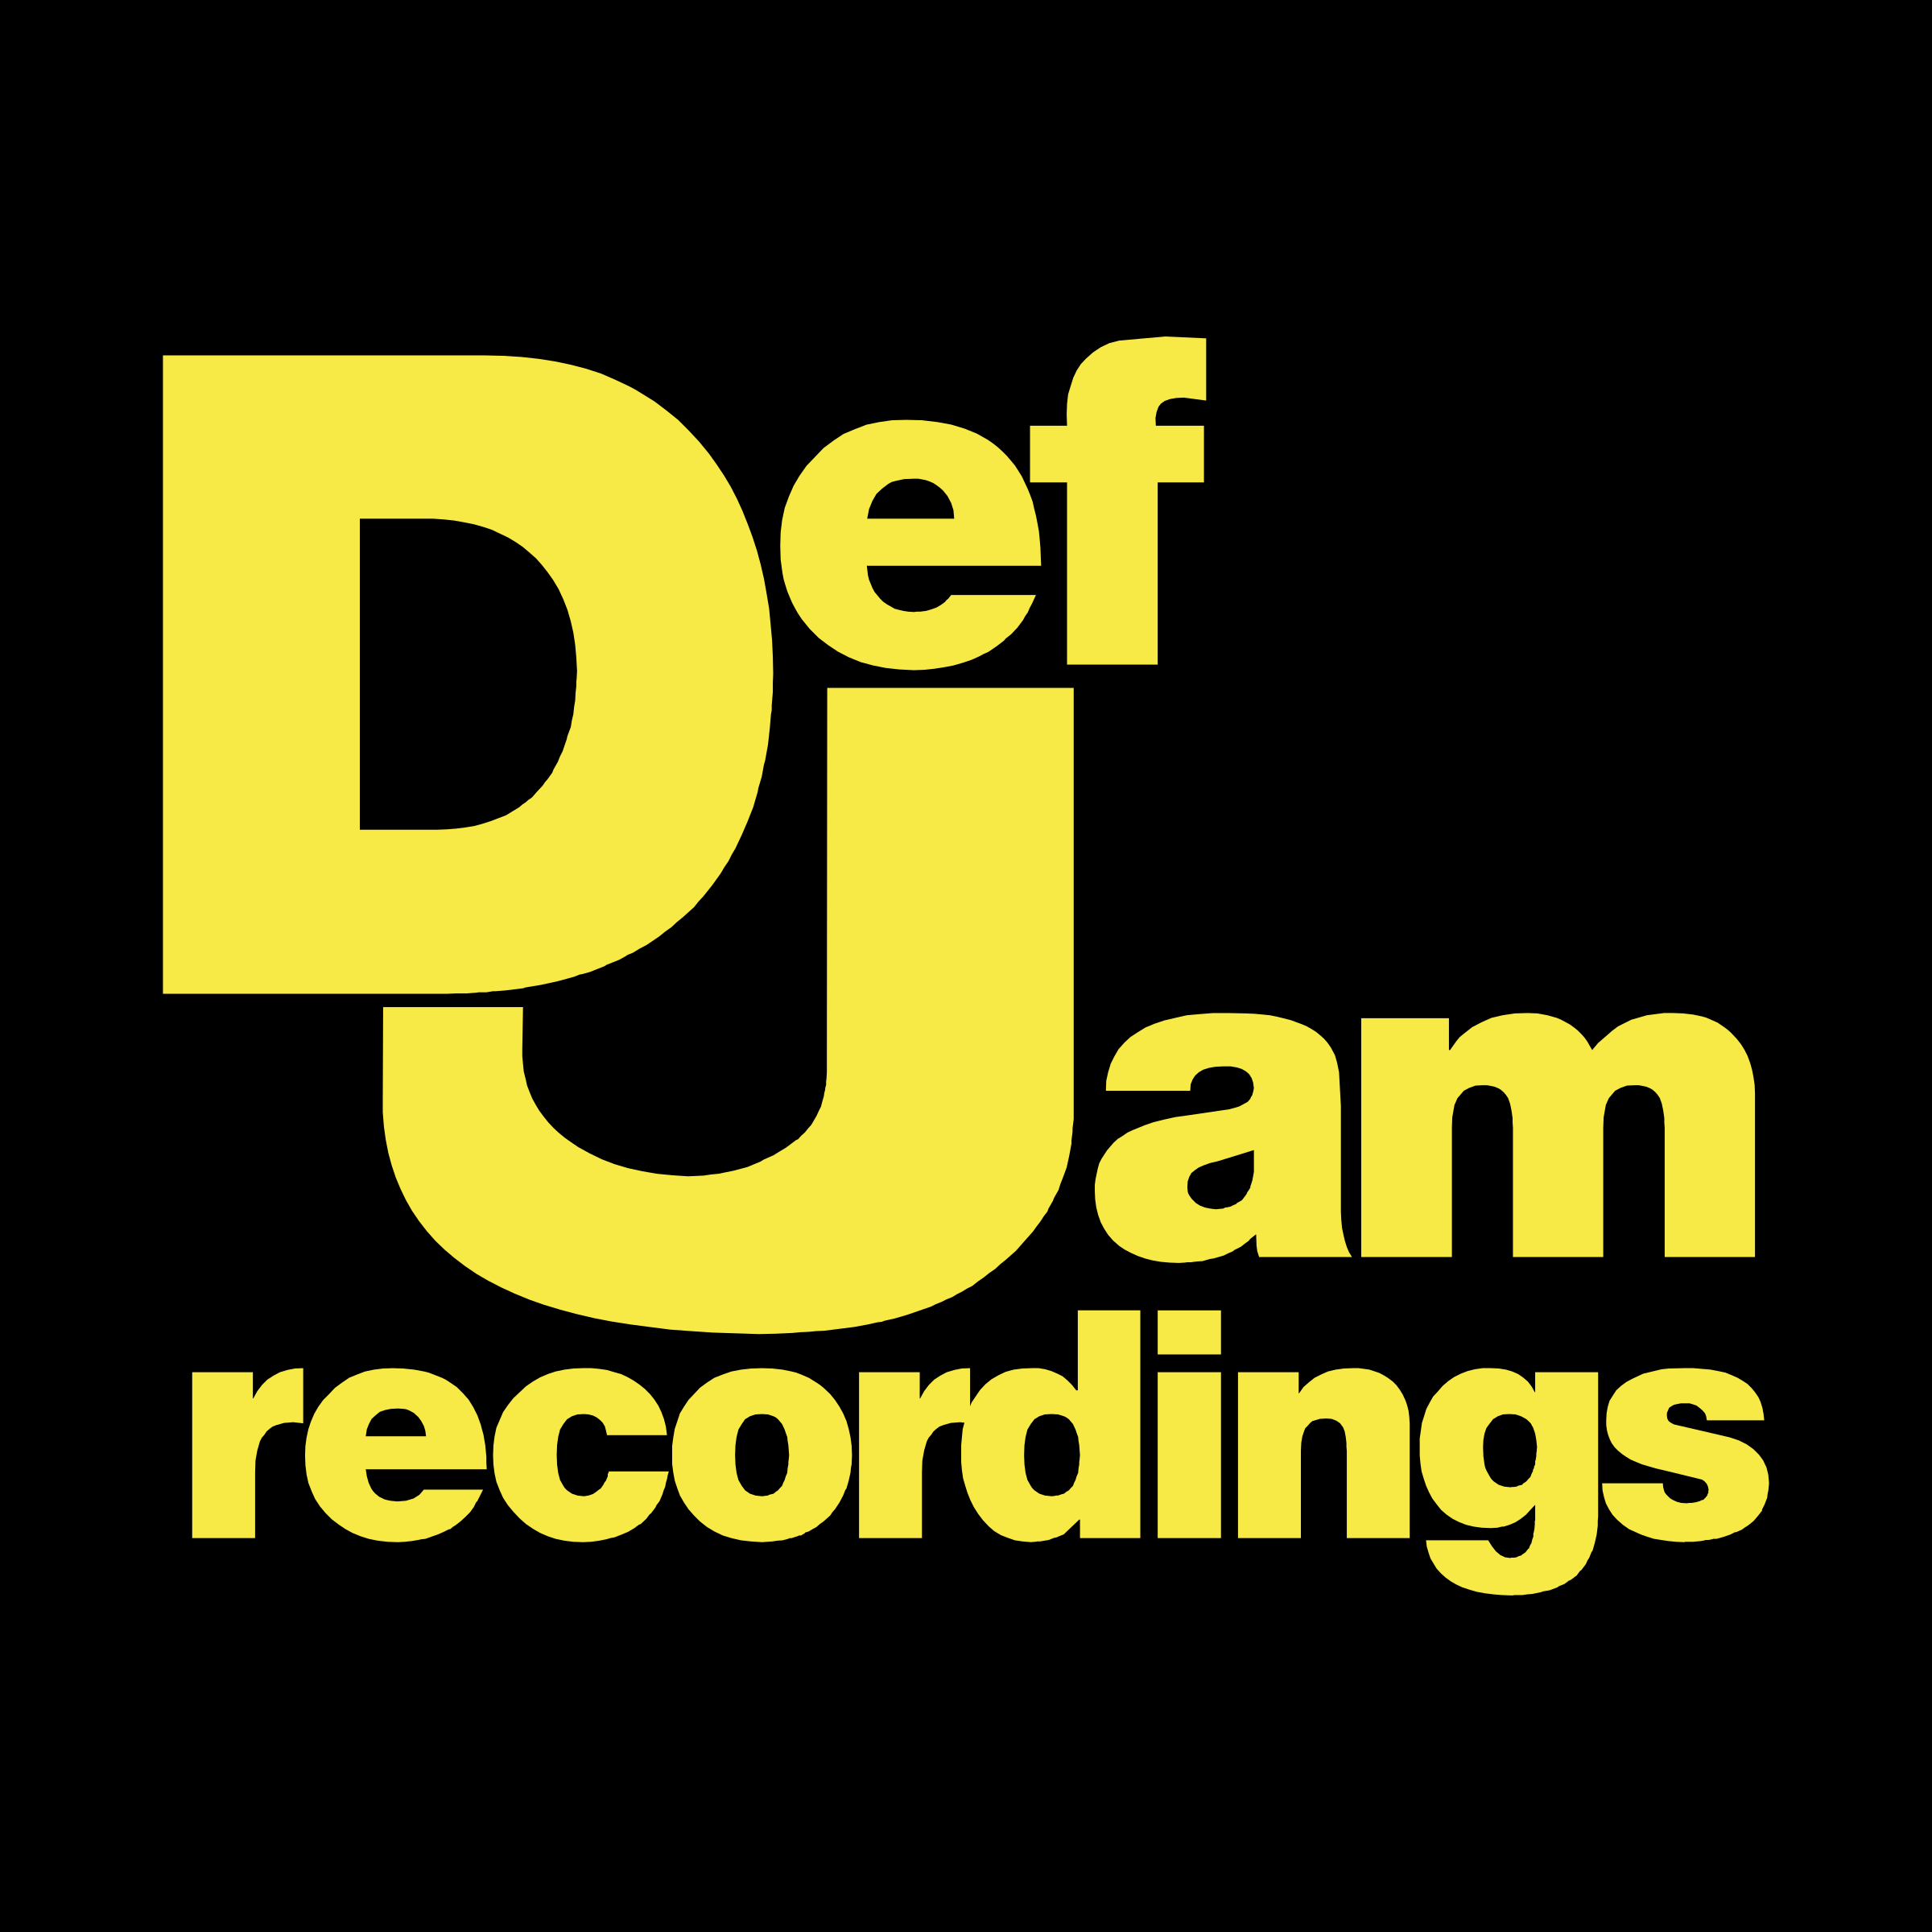 Def Jam Recordings Corporate logotype Logo PNG Transparent & SVG.